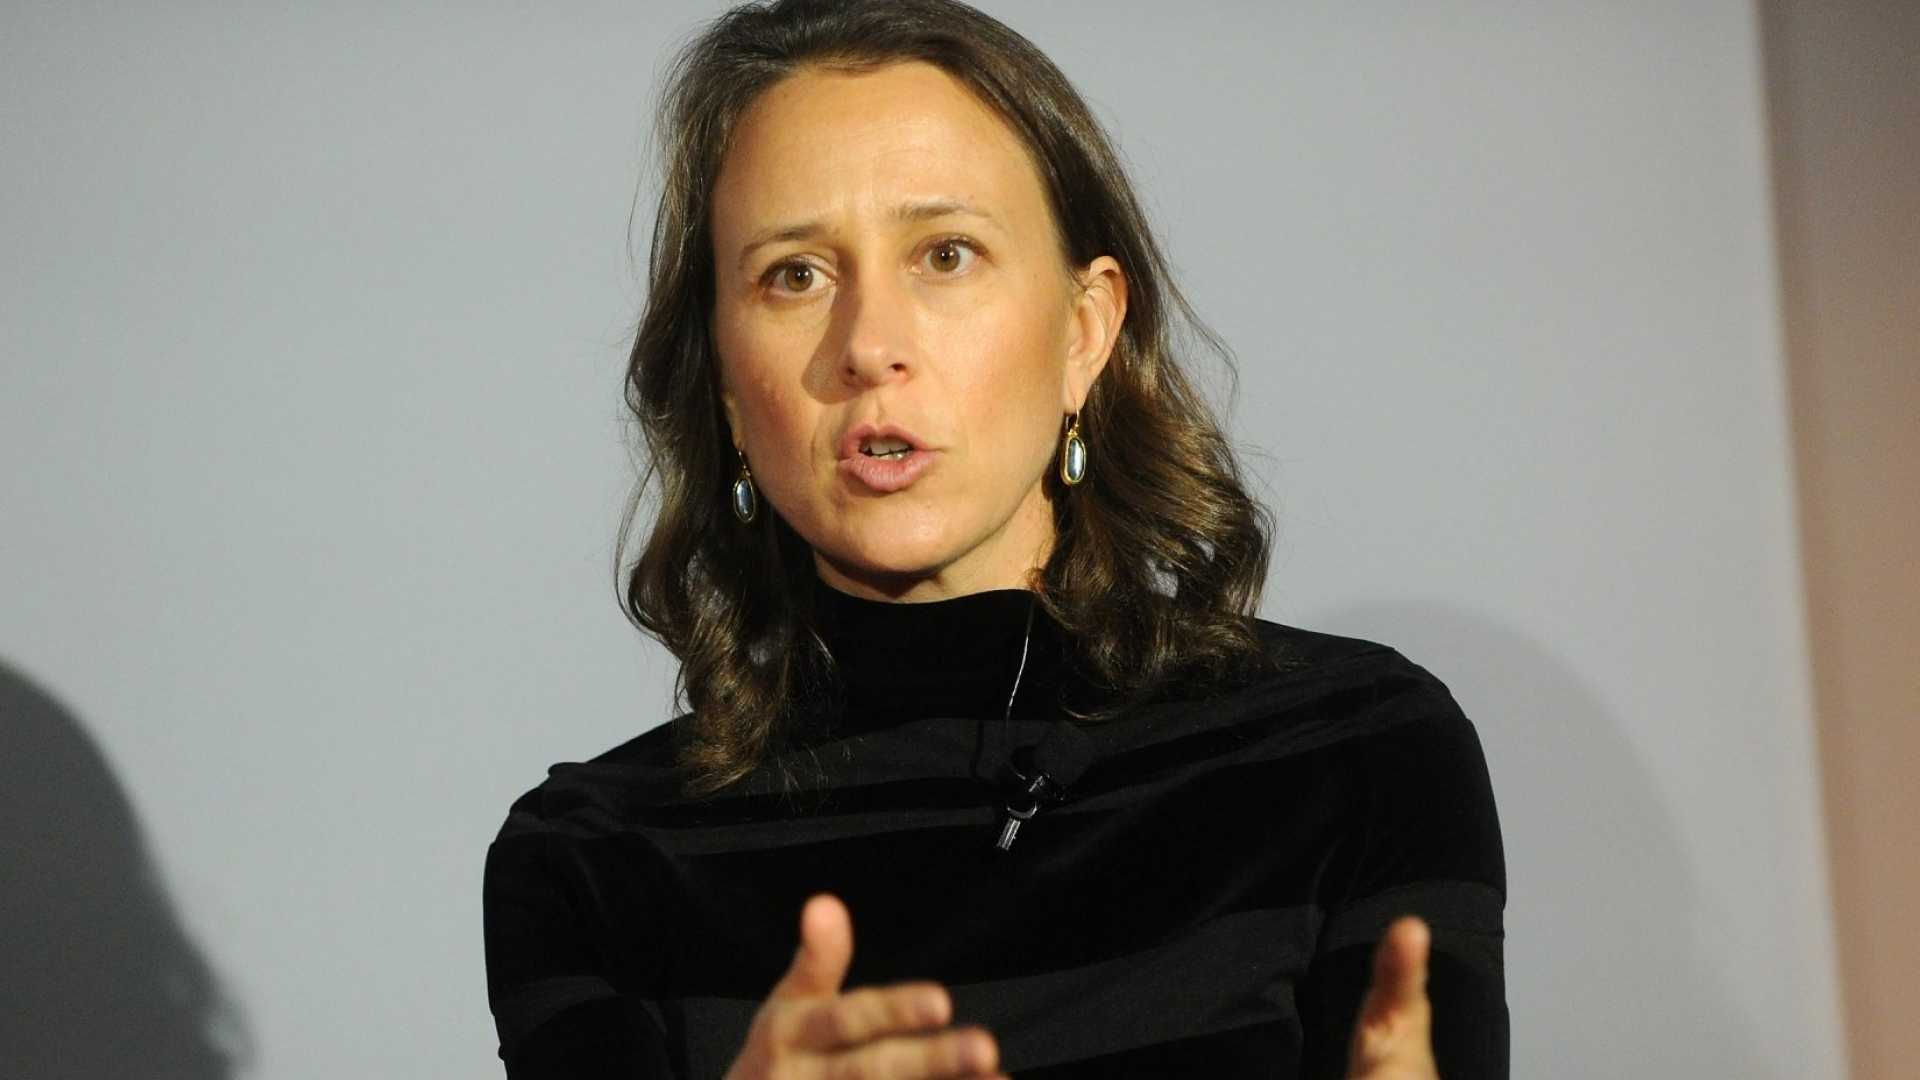 23andMe's Newest Test Tells You If You're Likely to DevelopDiabetes. Here's Why Customers Won't Have to Pay for It